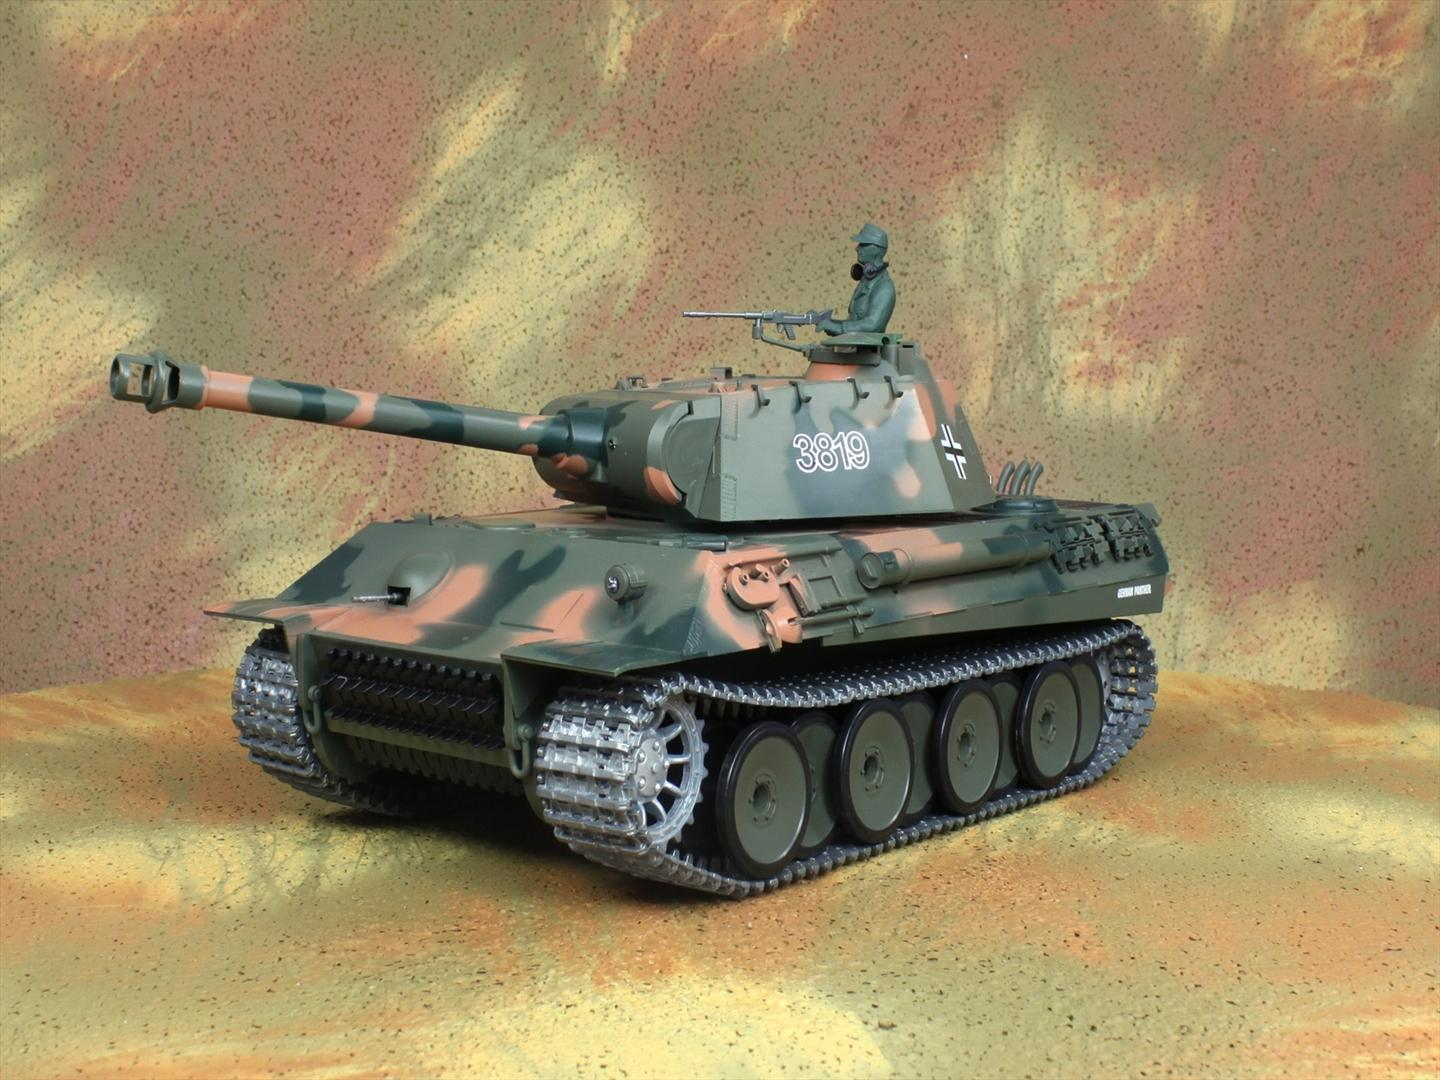 HENG-LONG Toys 3819 RC Scale Model Tank, World War II Germany Panther Remote Control Tank.